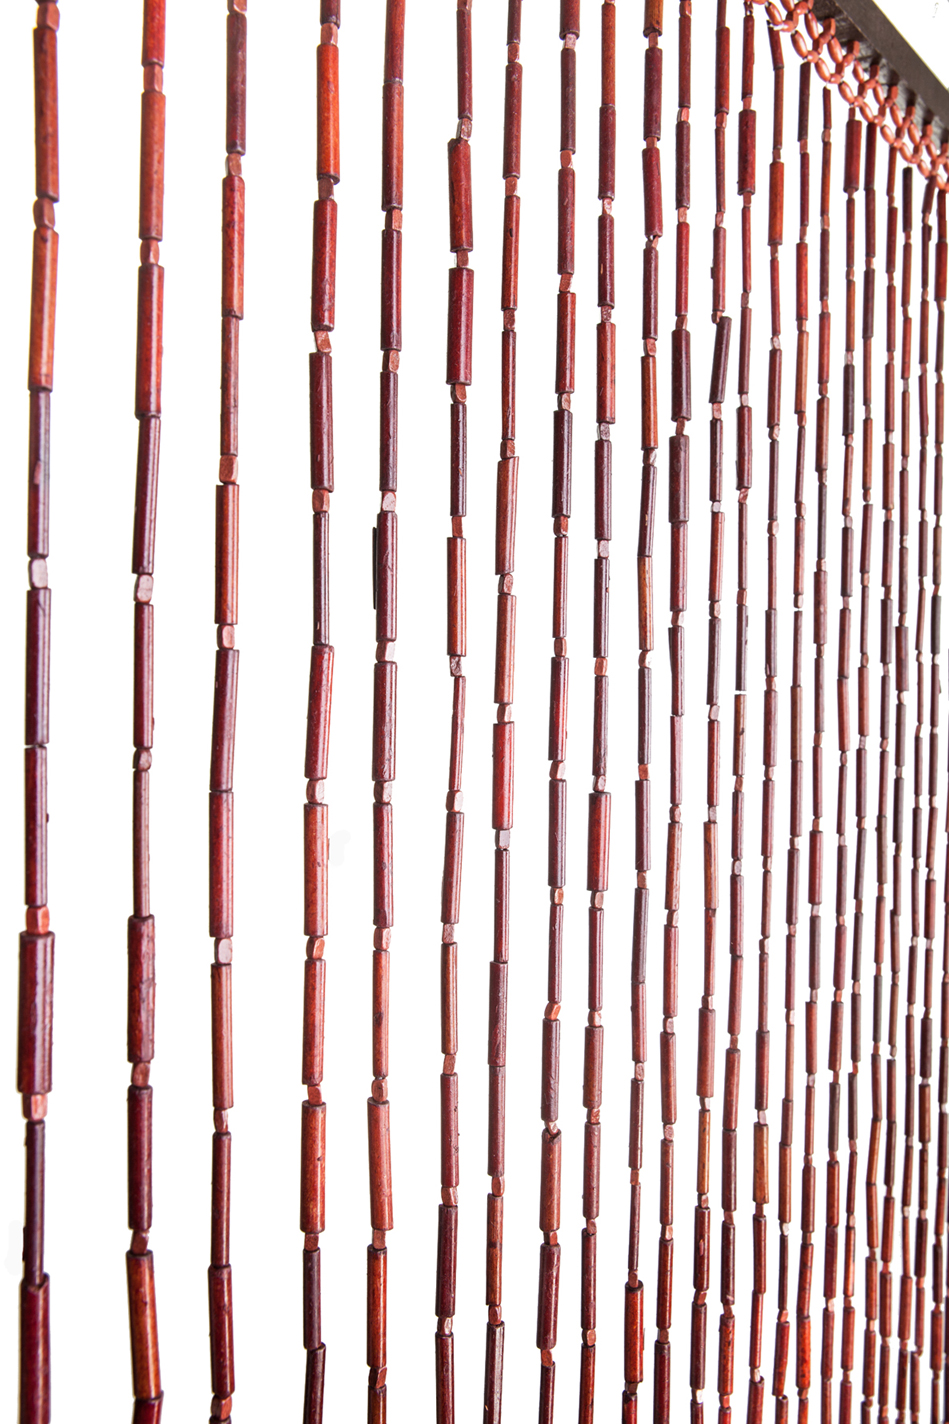 beaded curtain bamboo and wooden eclectic hippy